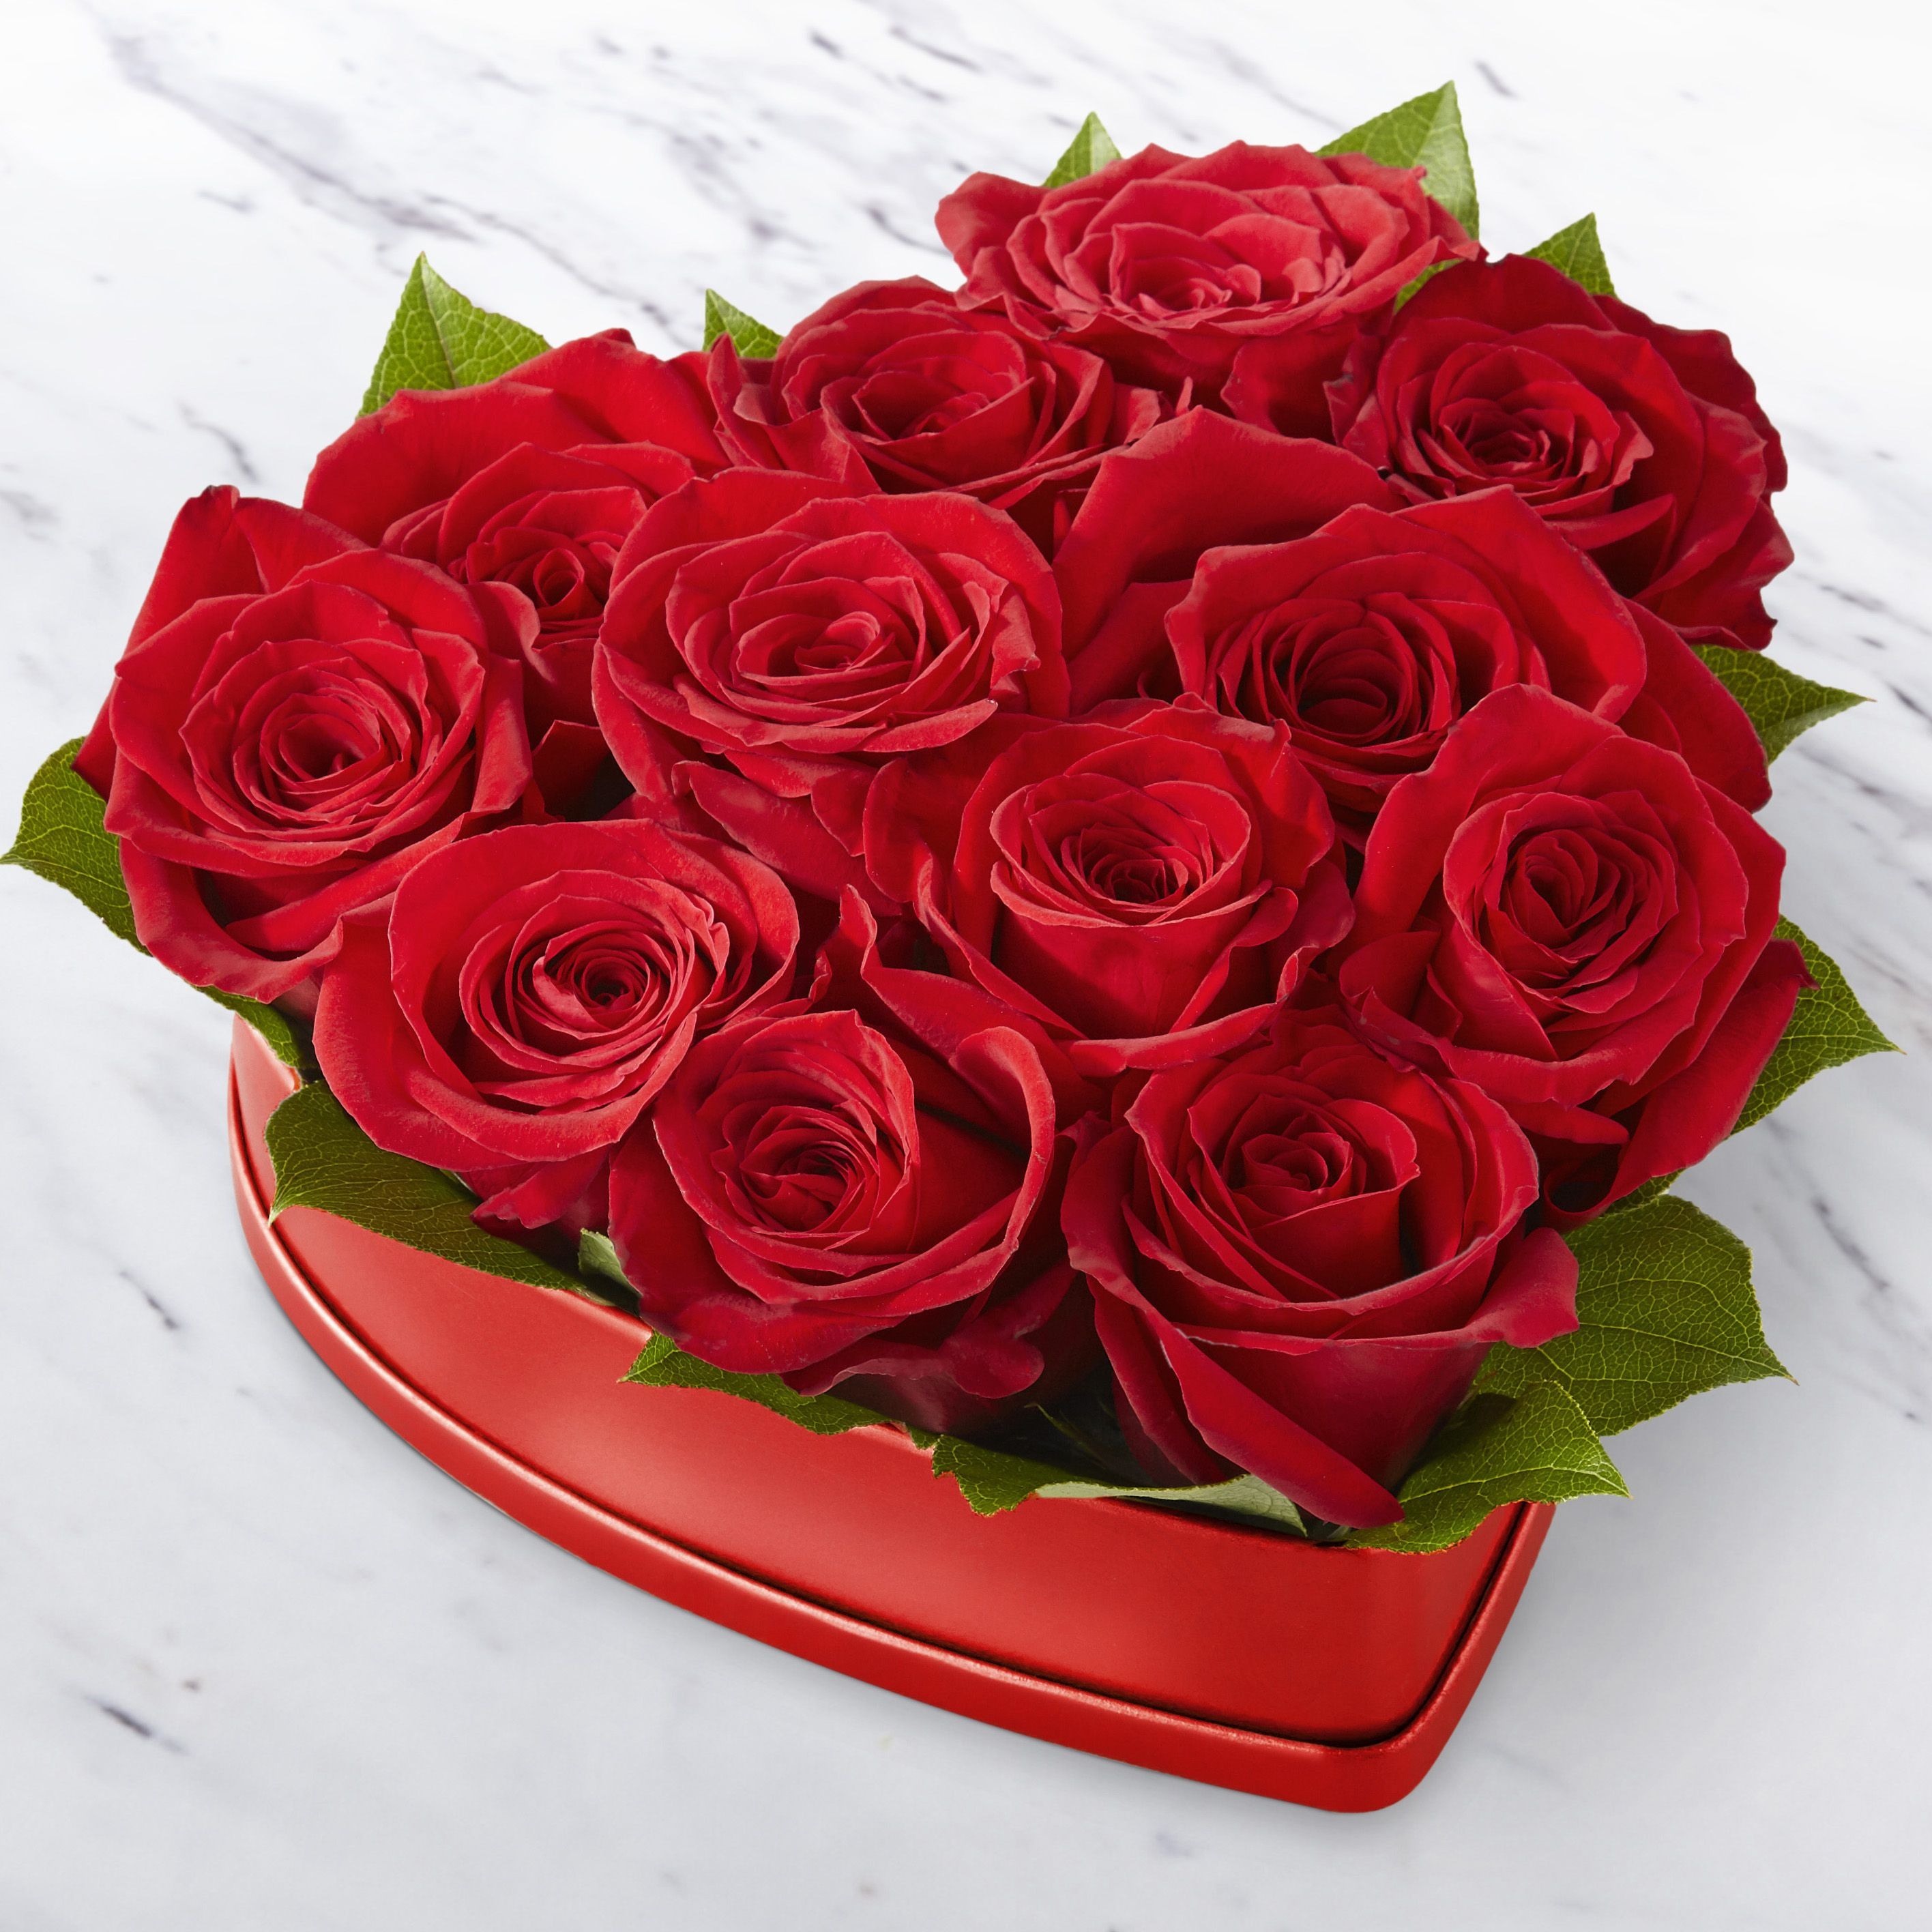 Surprise them for no reason! BloomLuxury redroses